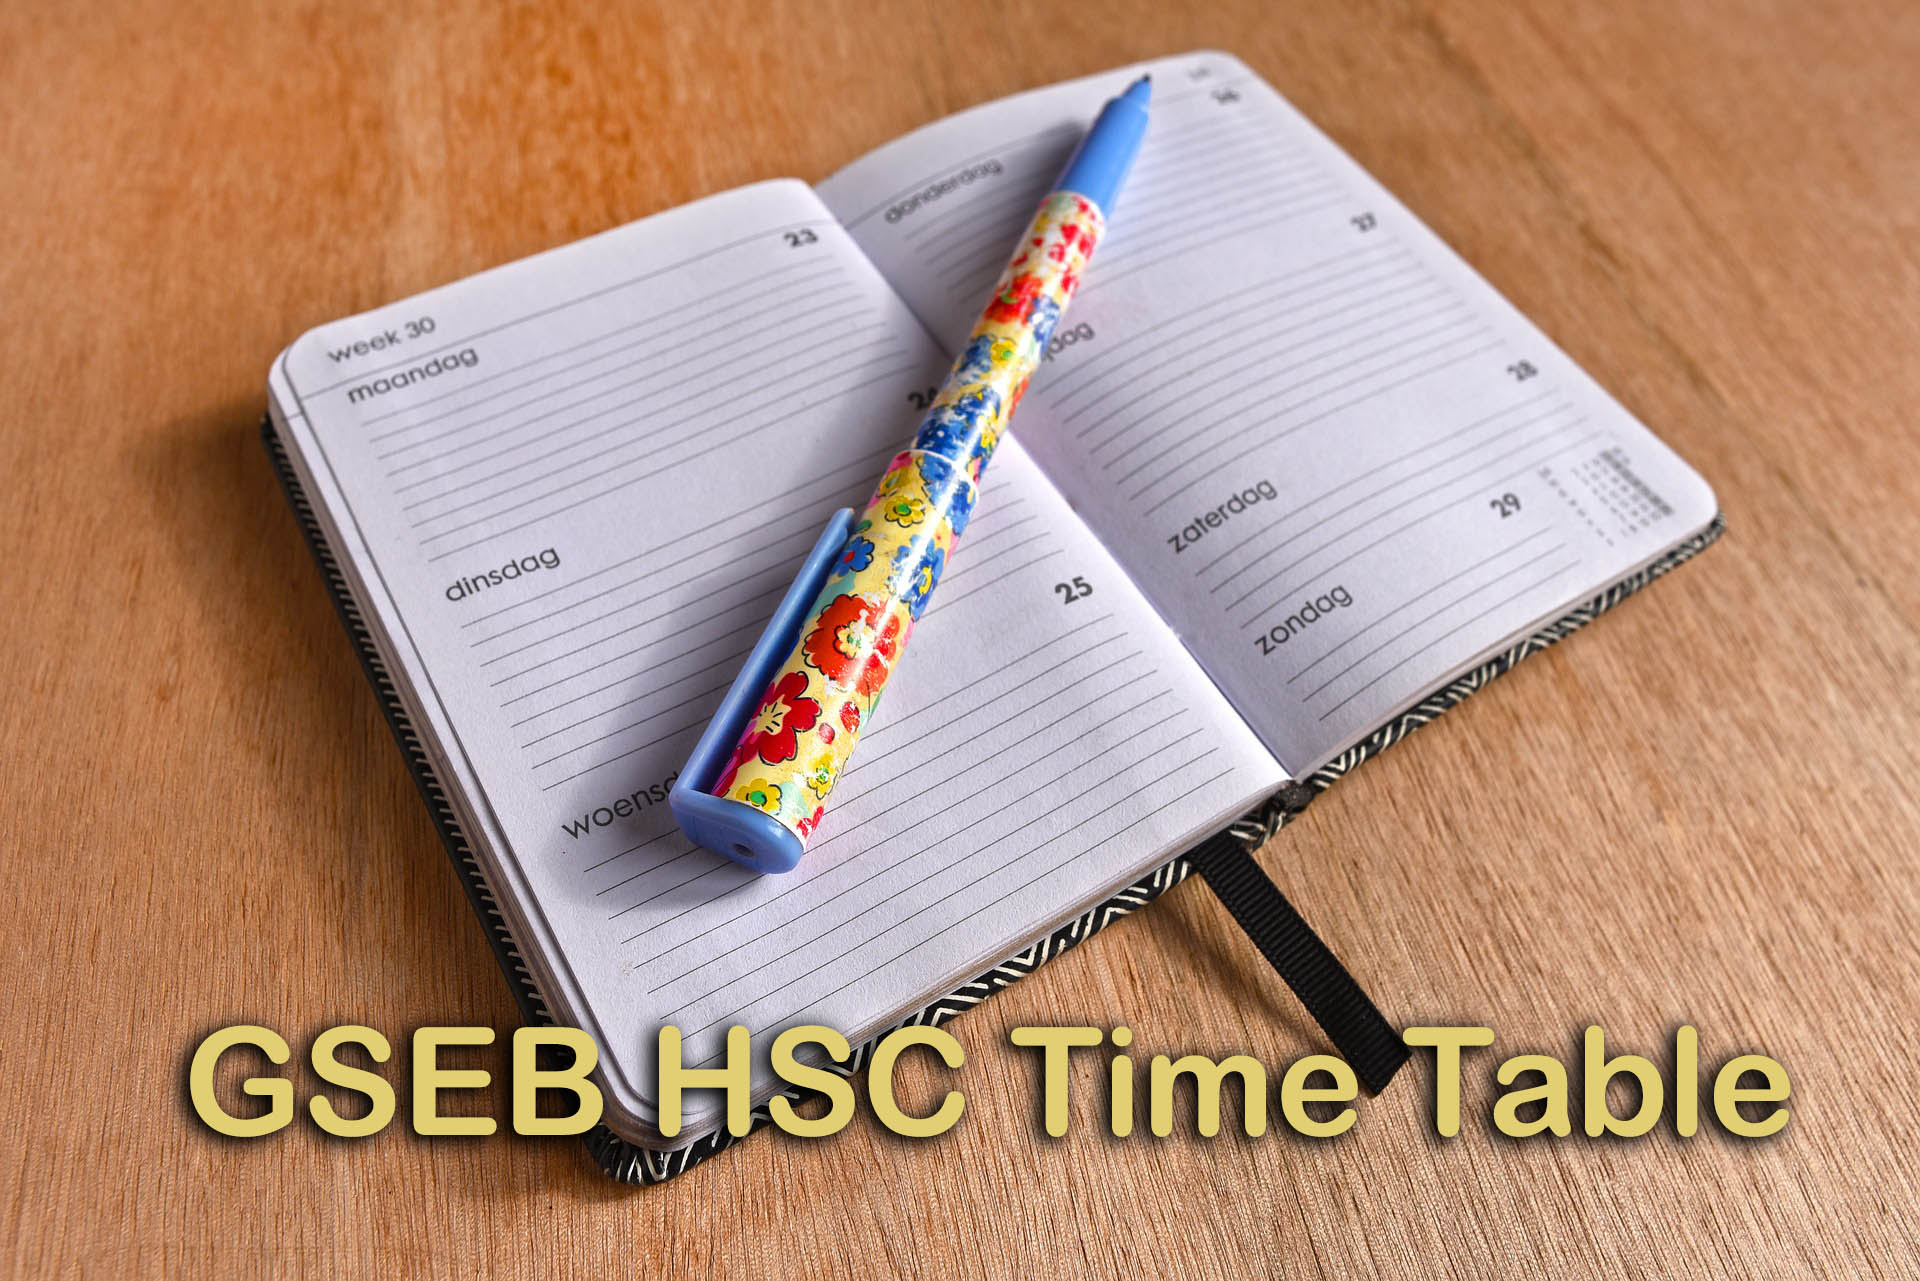 GSEB HSC Time Table